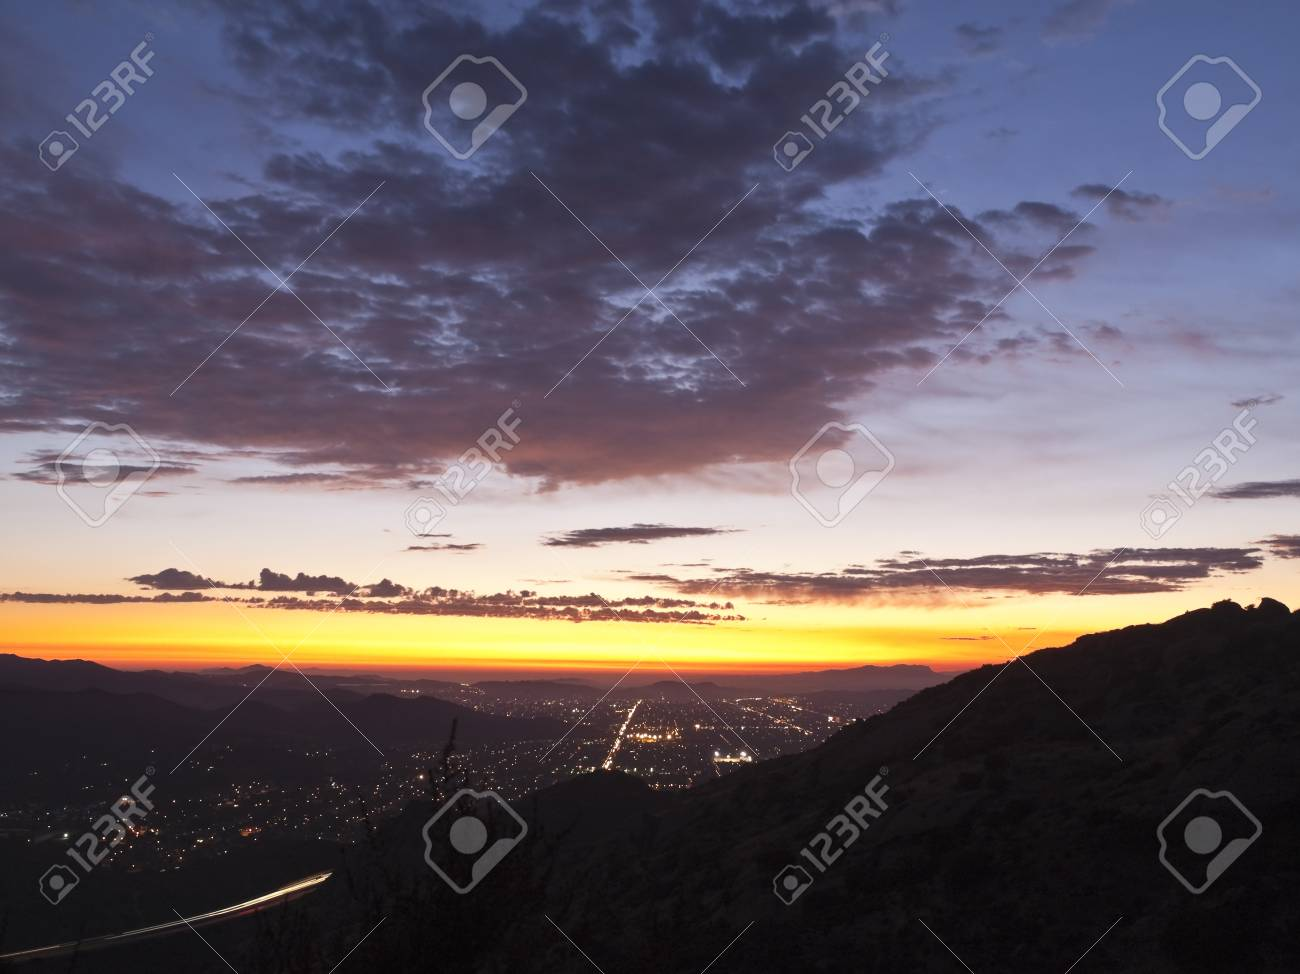 Simi Valley in Southern California at sunset.  Shot from Rocky Peak Park. Stock Photo - 10669129